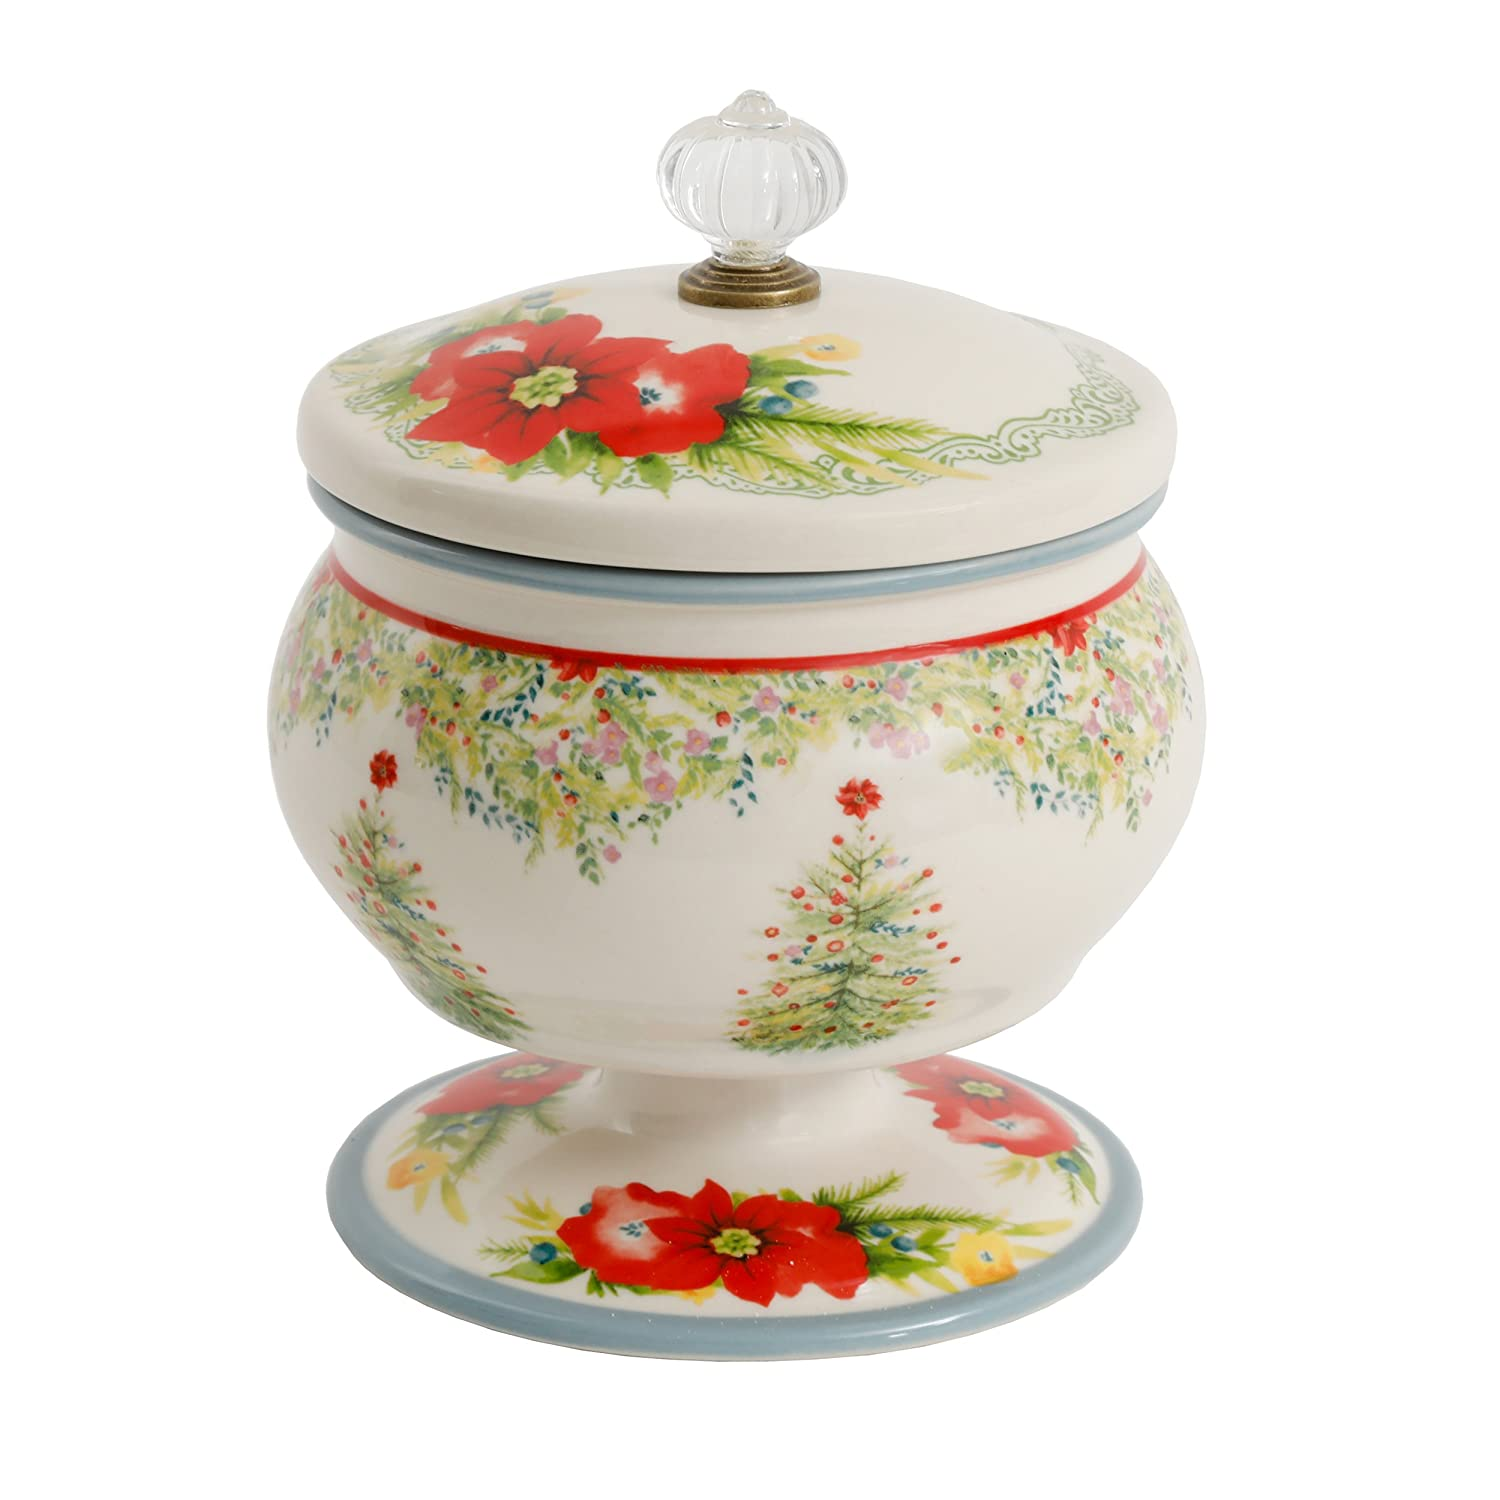 The Pioneer Woman Holiday Cheer Candy Dish